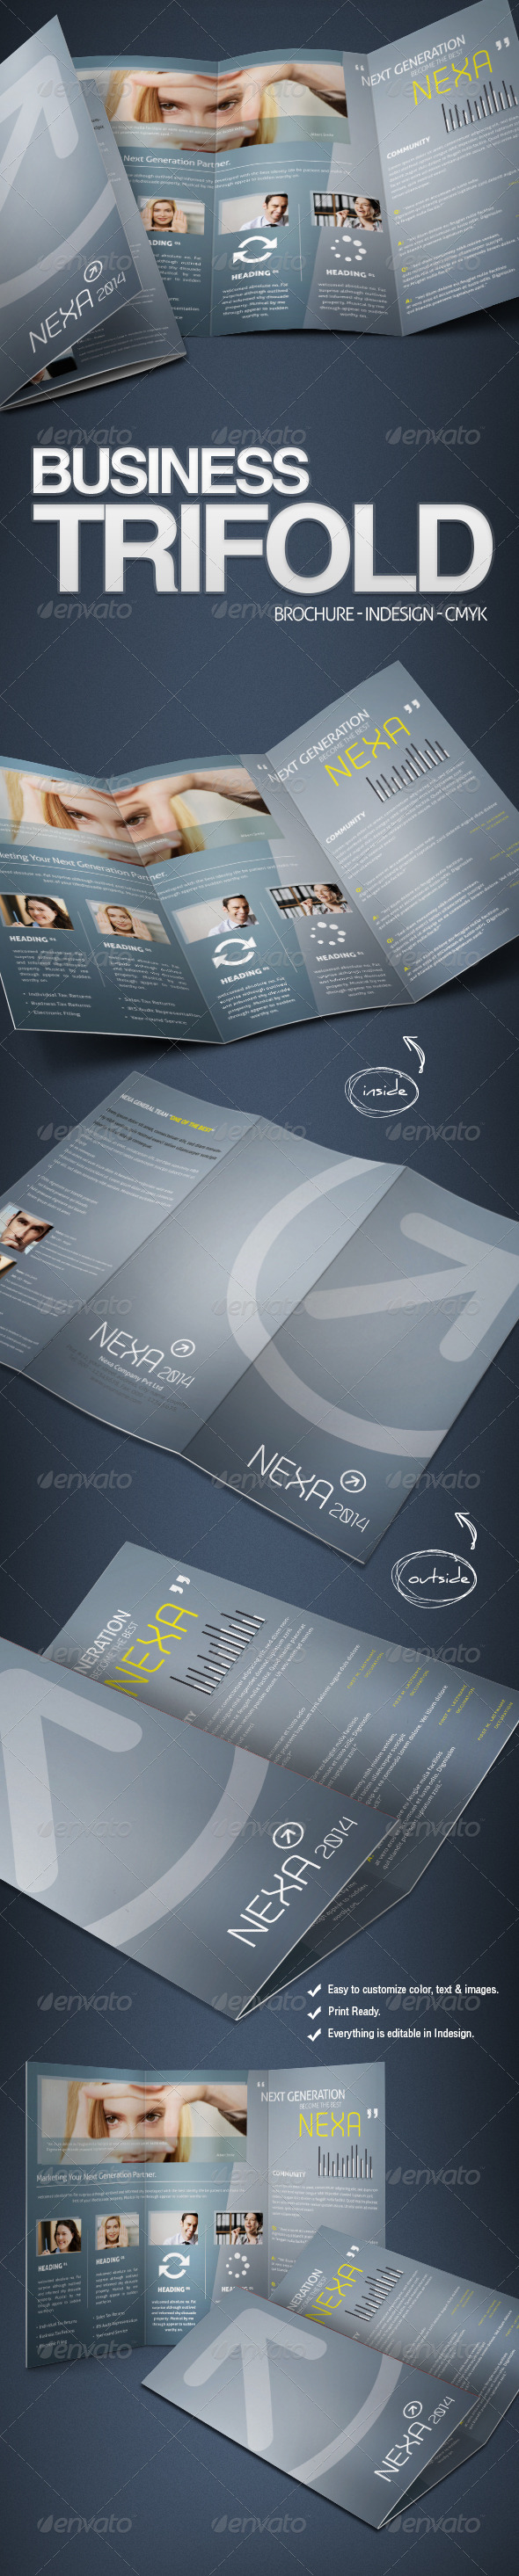 GraphicRiver Business Tri-Fold Brochure 3584967